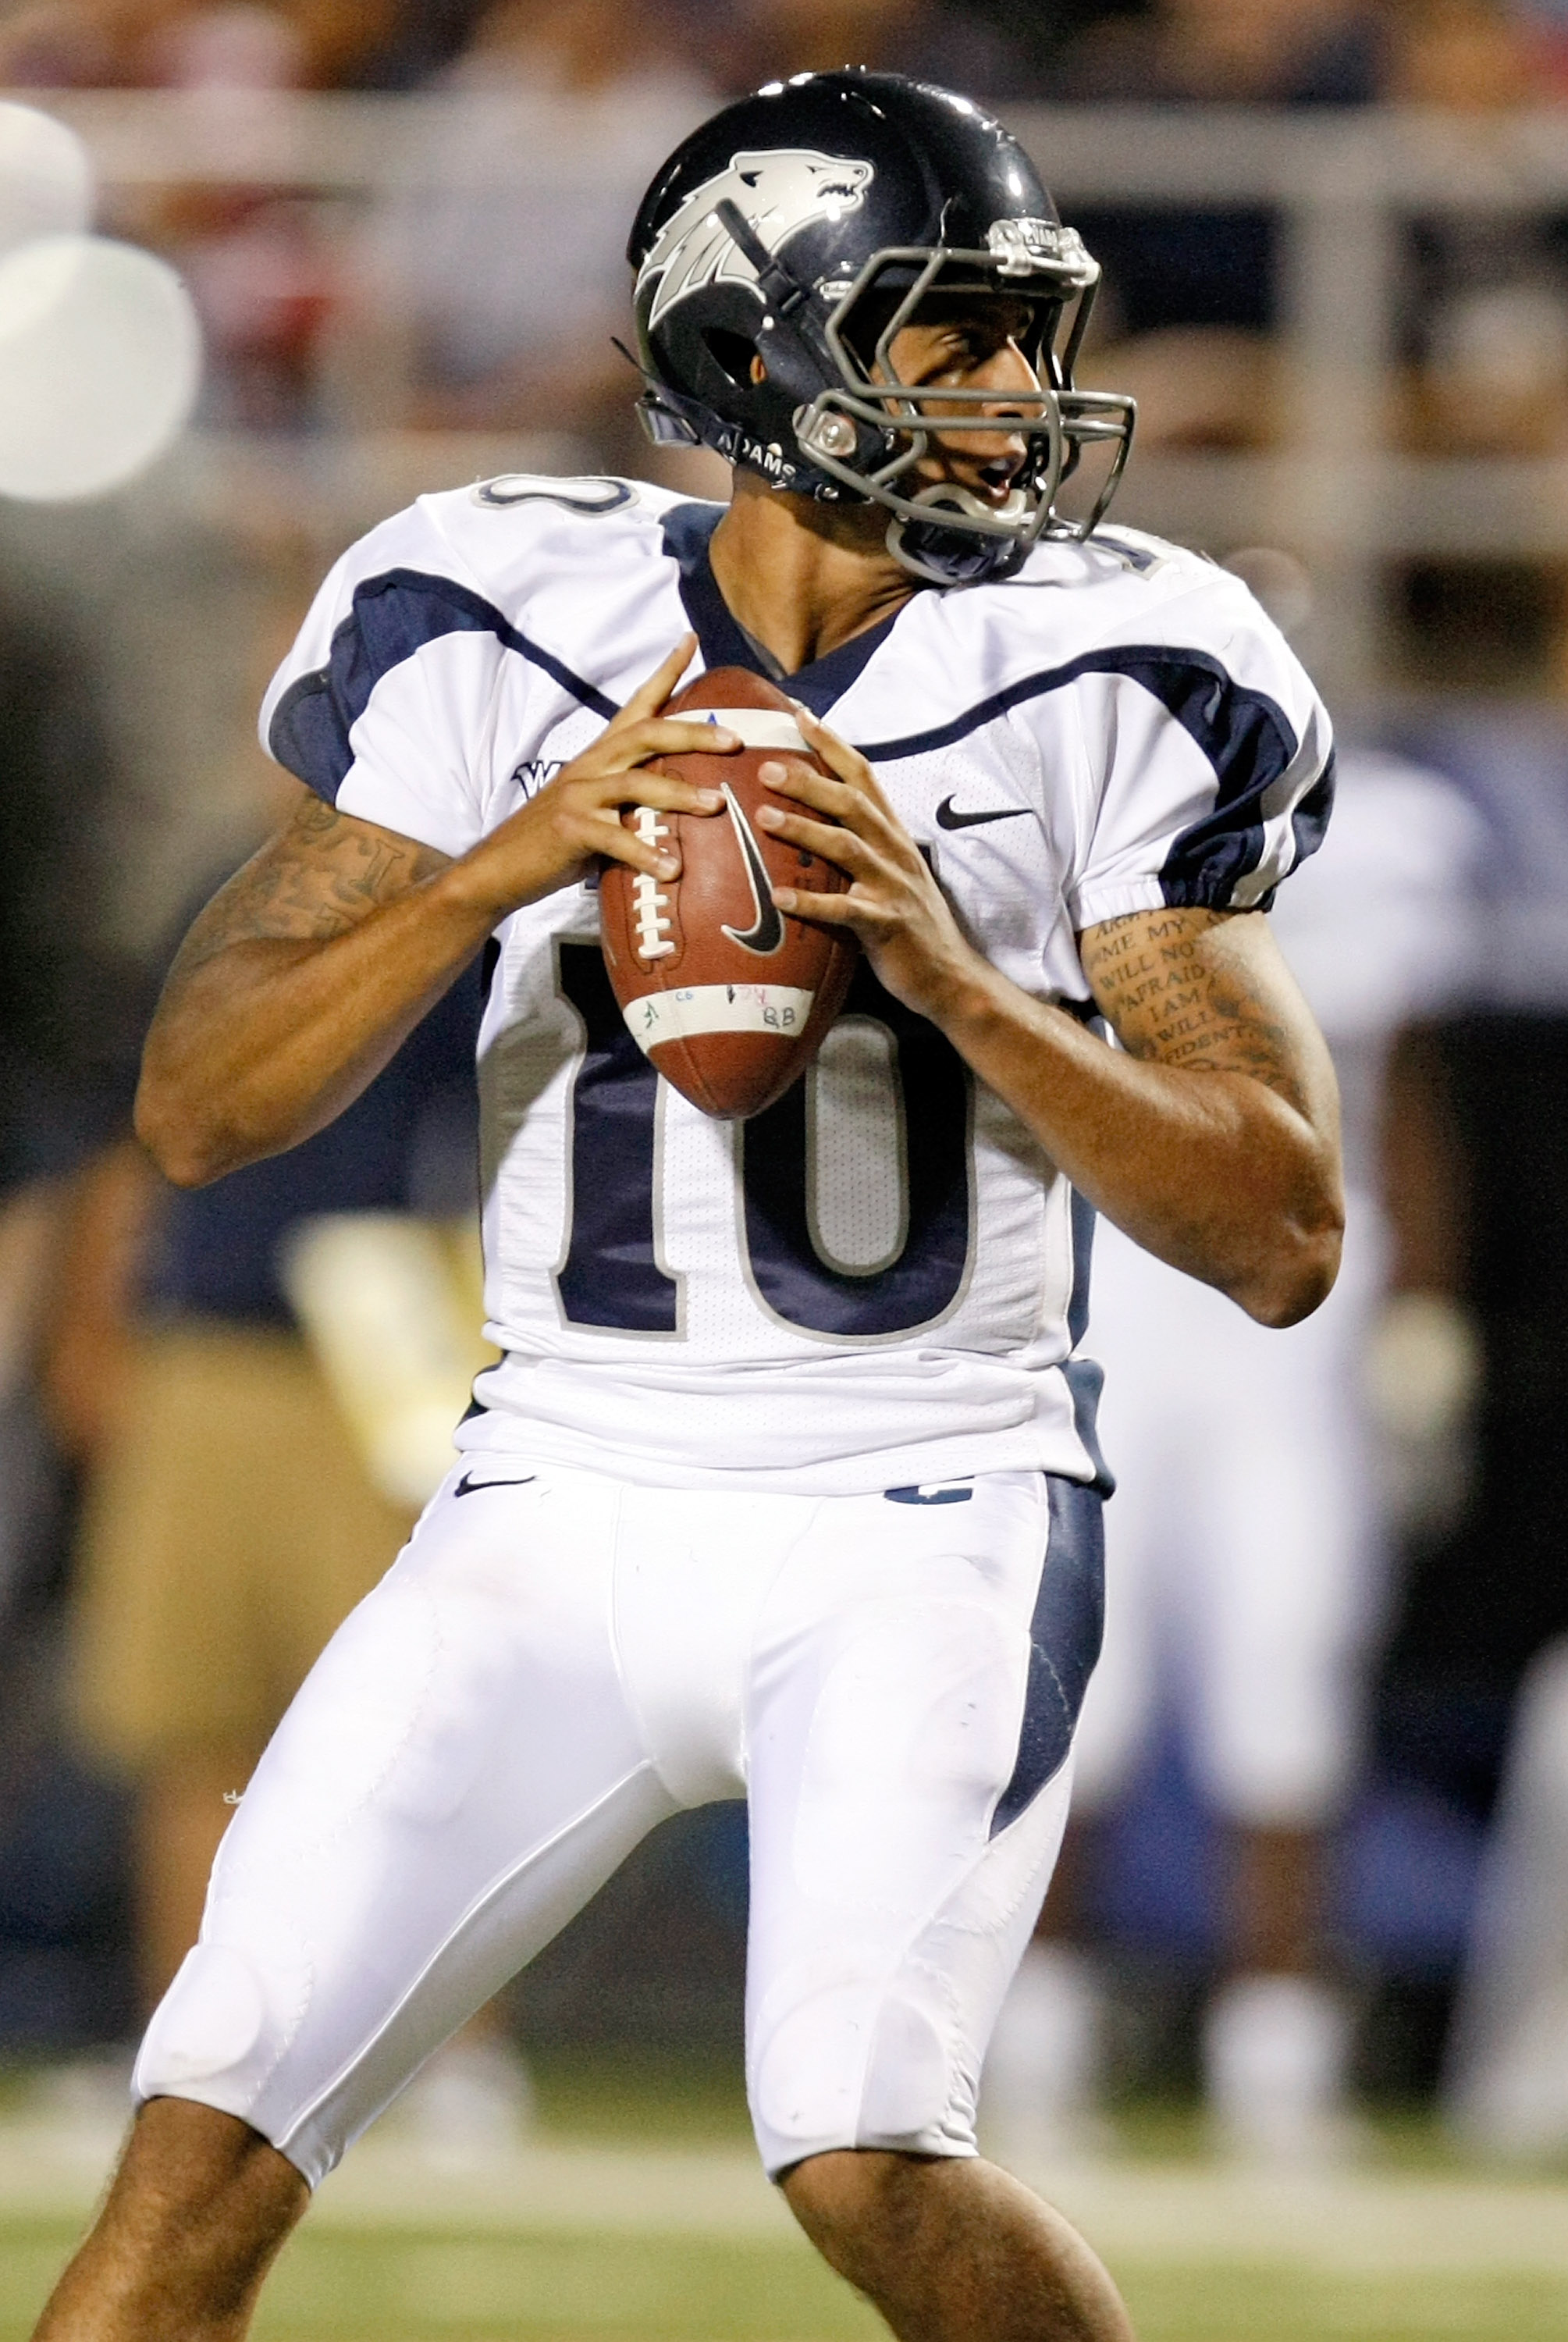 Nevada quarterback Colin Kaepernick is the only player in NCAA Division I history to throw for over 10,000 yards and rush for over 4,000 yards in a career.